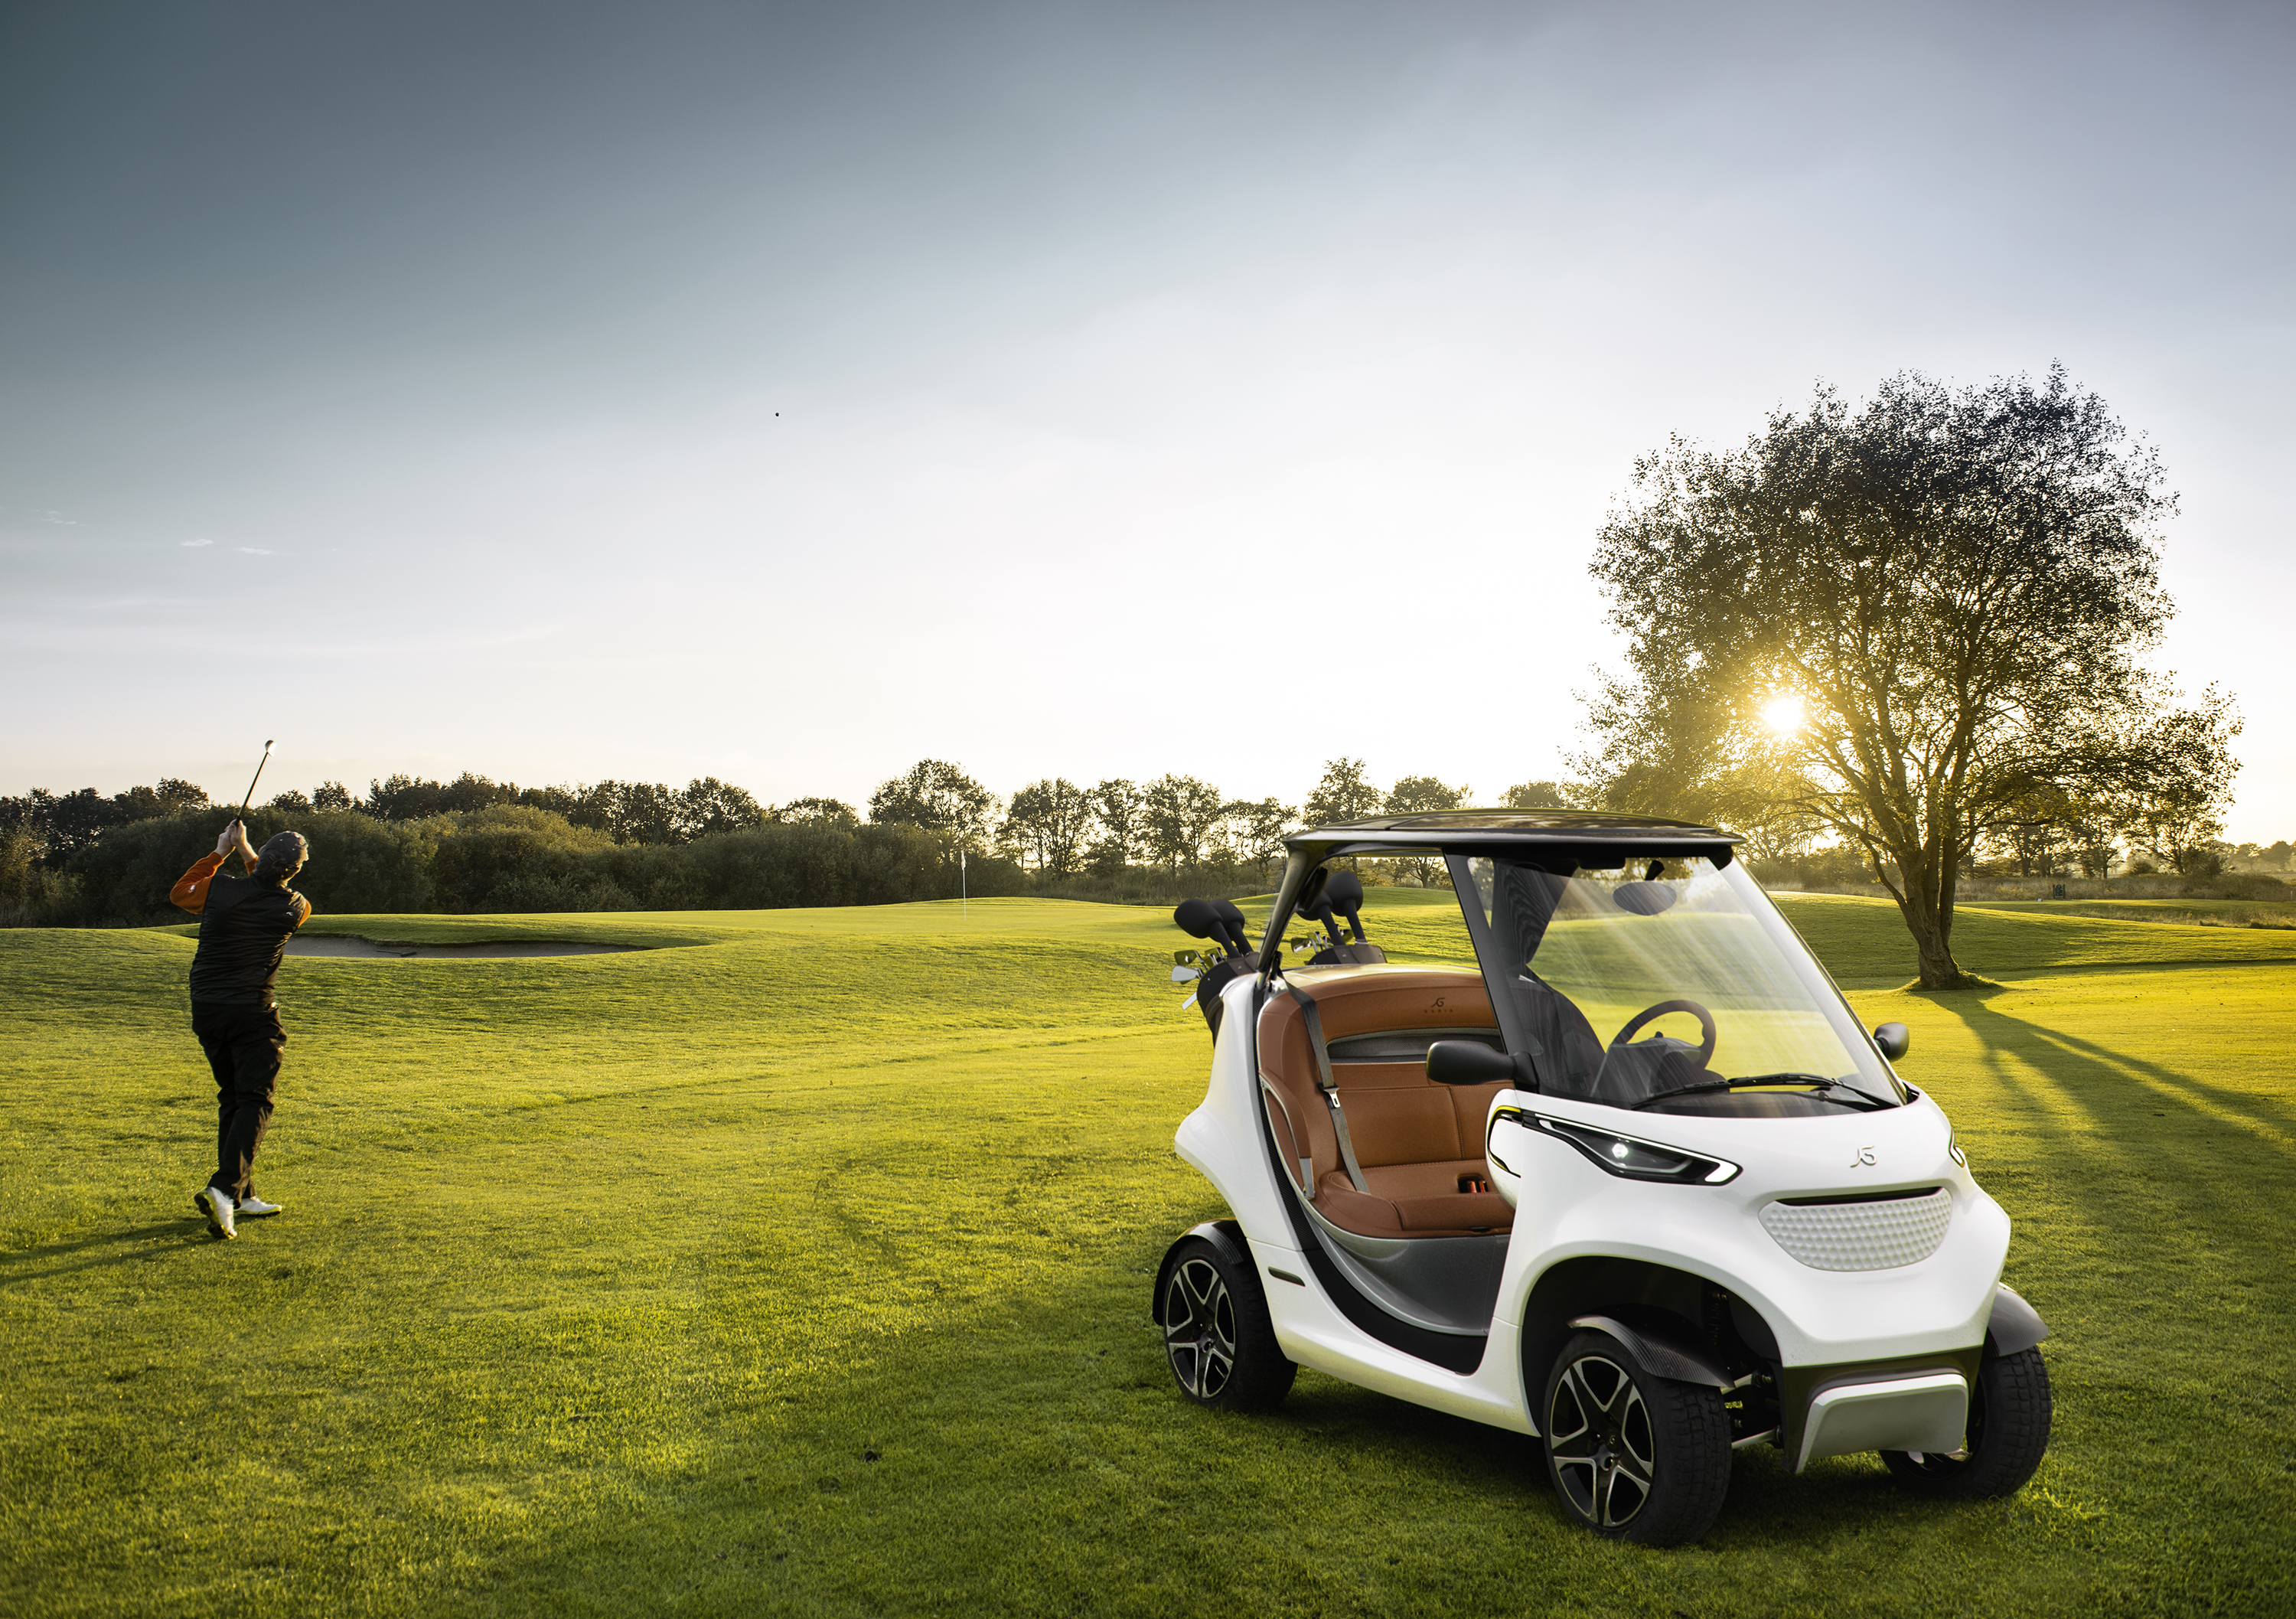 Garia Golf Car inspired by Mercedes-Benz Style. | Business Wire on golf cart family, golf cart face, golf cart modified, golf cart step, golf cart king, golf cart movie, golf cart game, golf cart hand, golf cart light, golf cart front, golf cart best, golf cart girl, golf cart one, golf cart red, golf cart head, golf cart real, golf cart fast, golf cart california, golf cart large, golf cart back,